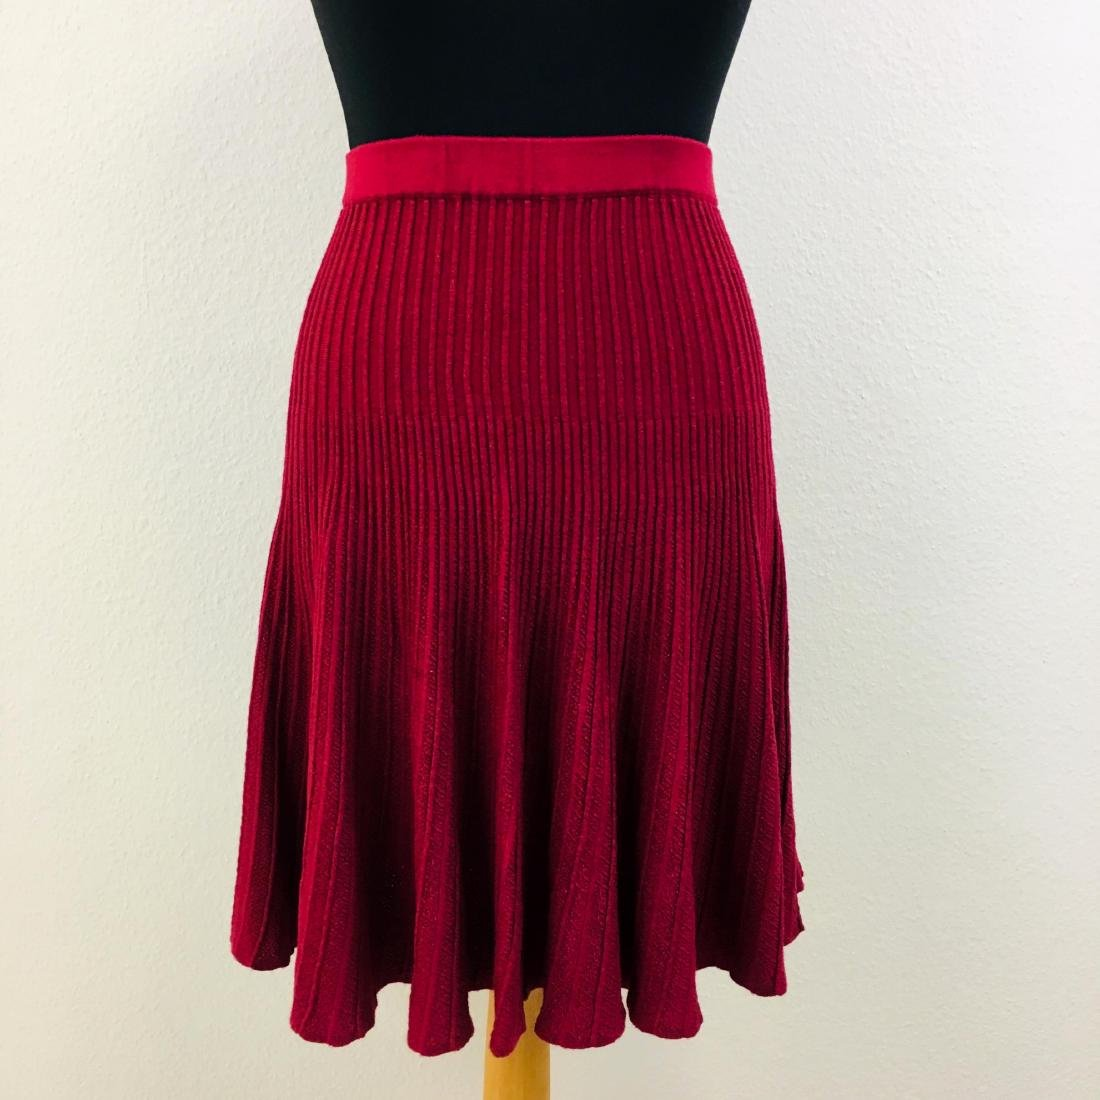 Vintage Women's Pleated Red Skirt - 2